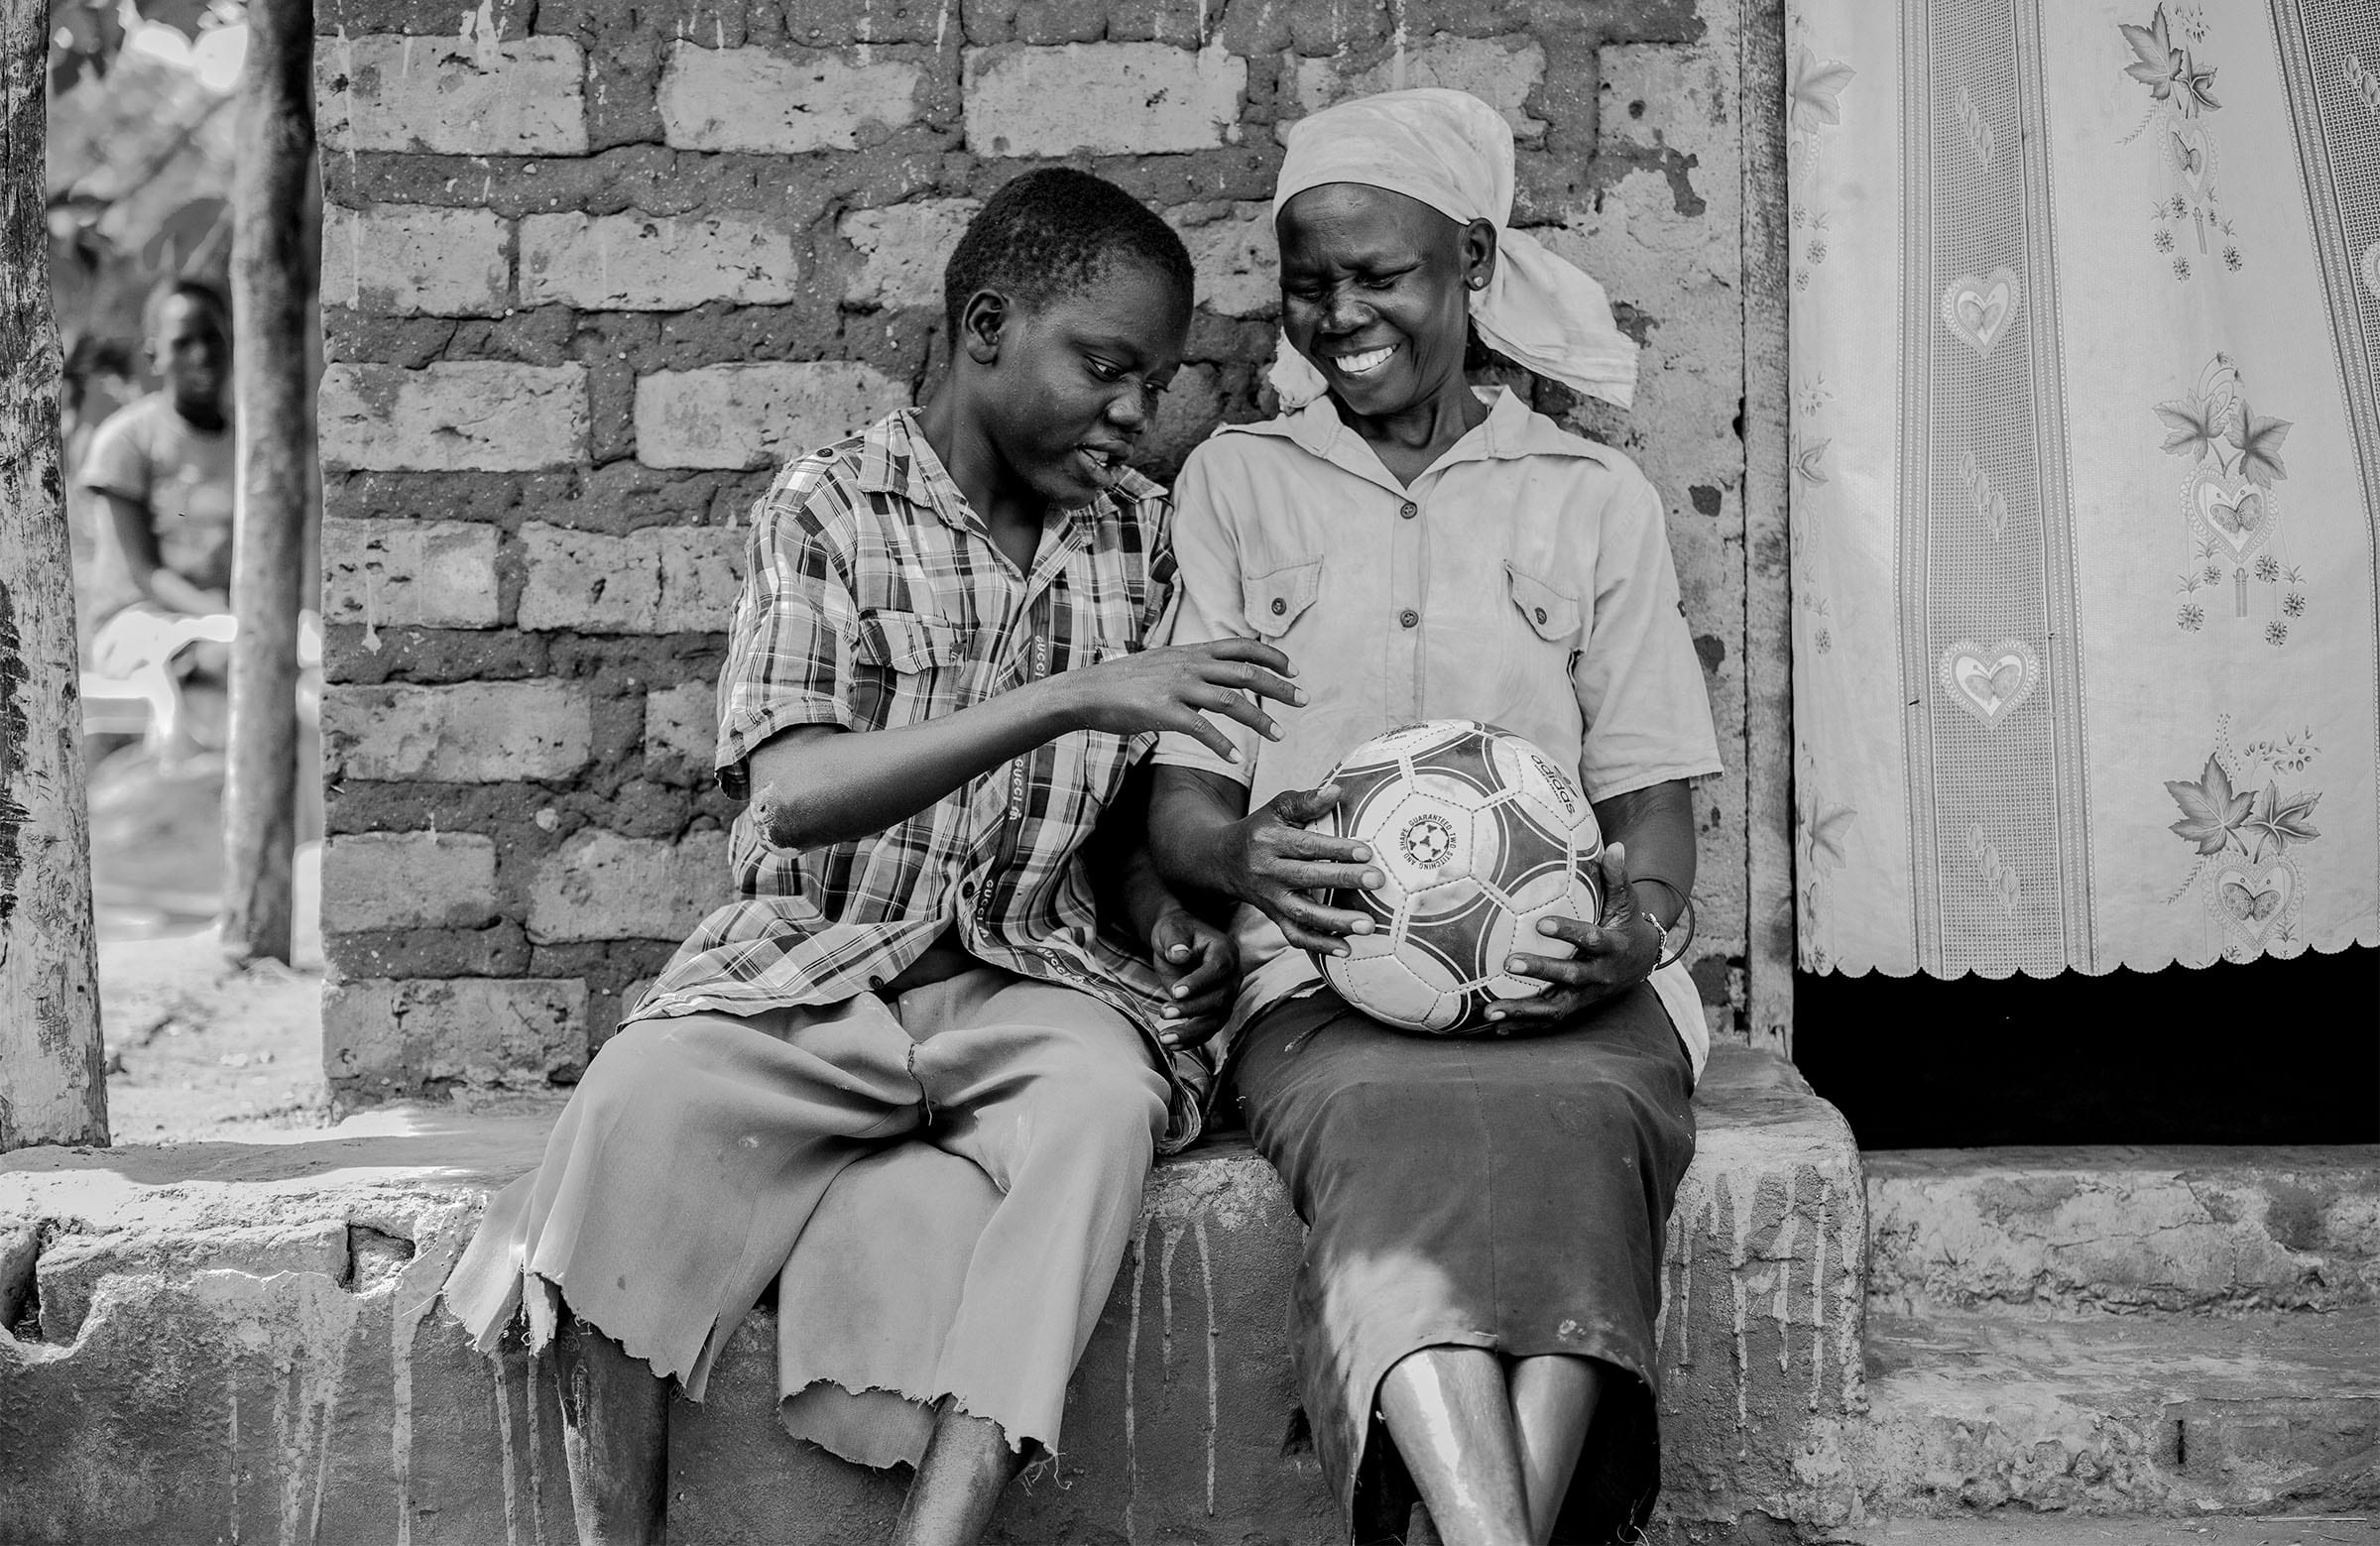 a boy sitting next to his mother reaches for a football she is holding